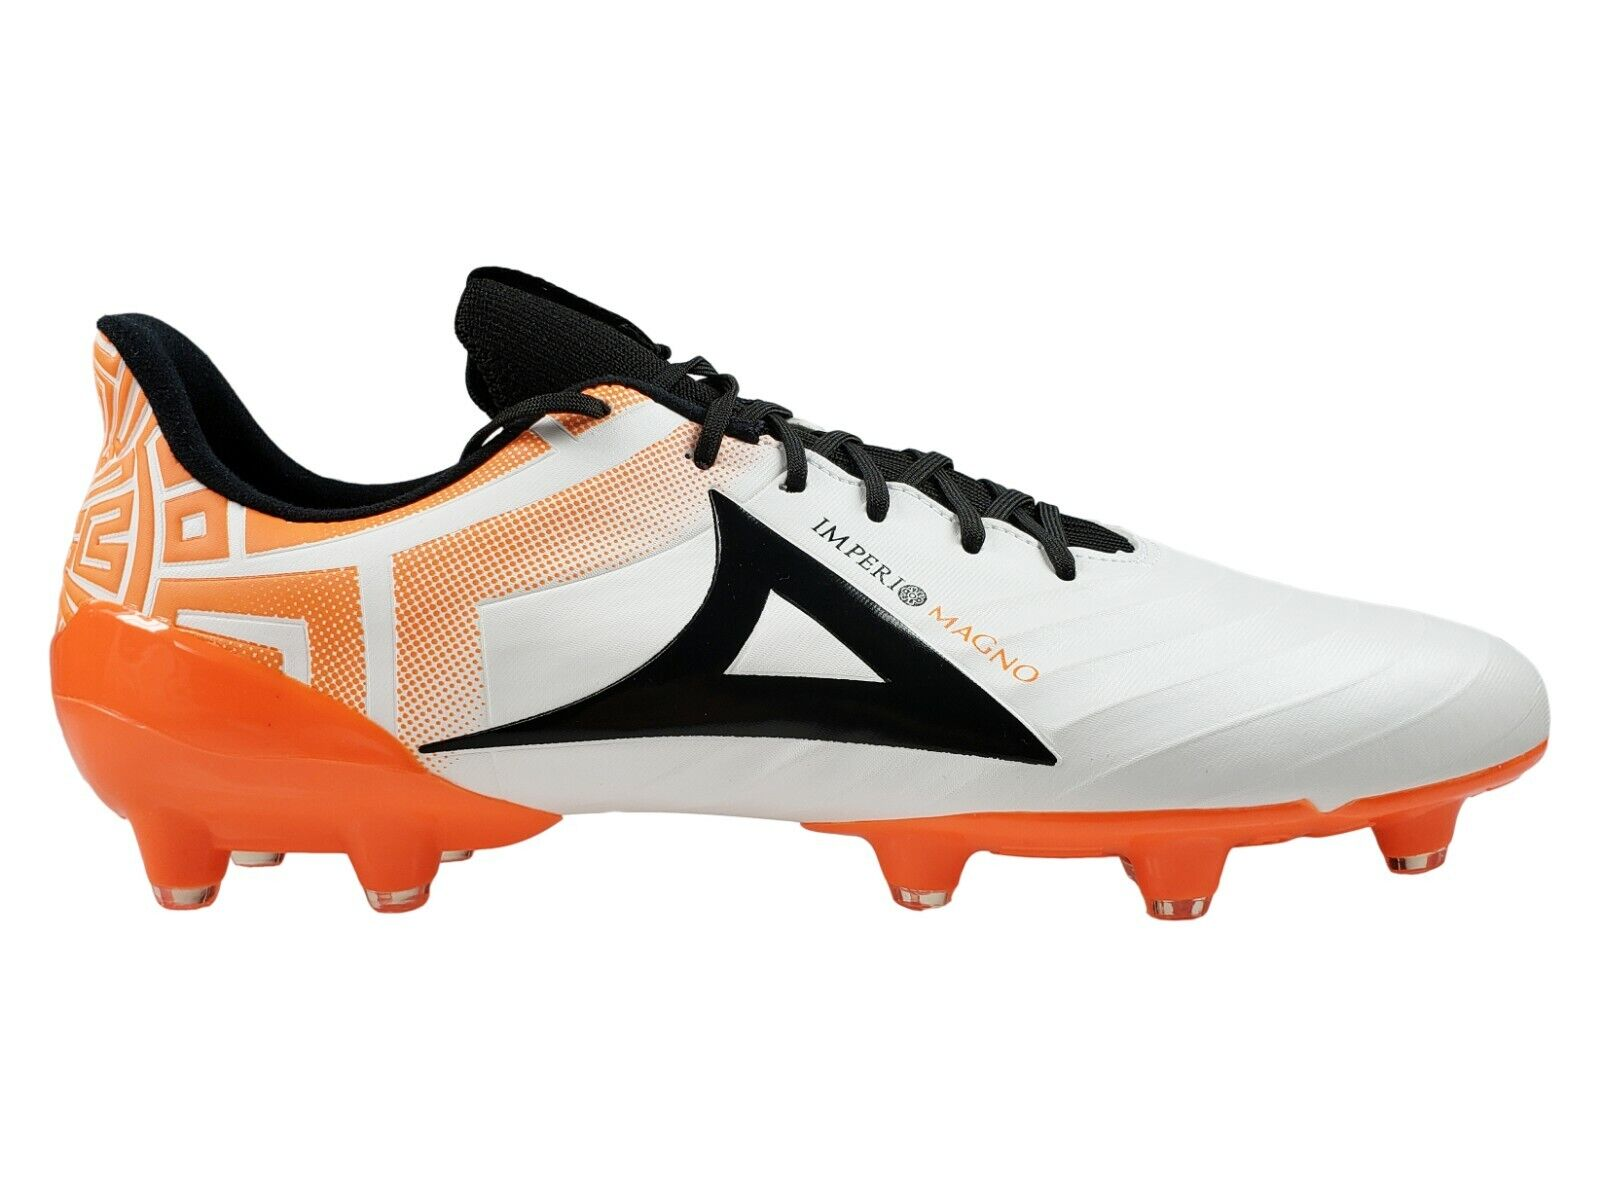 Men's Pirma Soccer Cleats Imperio Magno Coloree biancaarancia Firm Ground